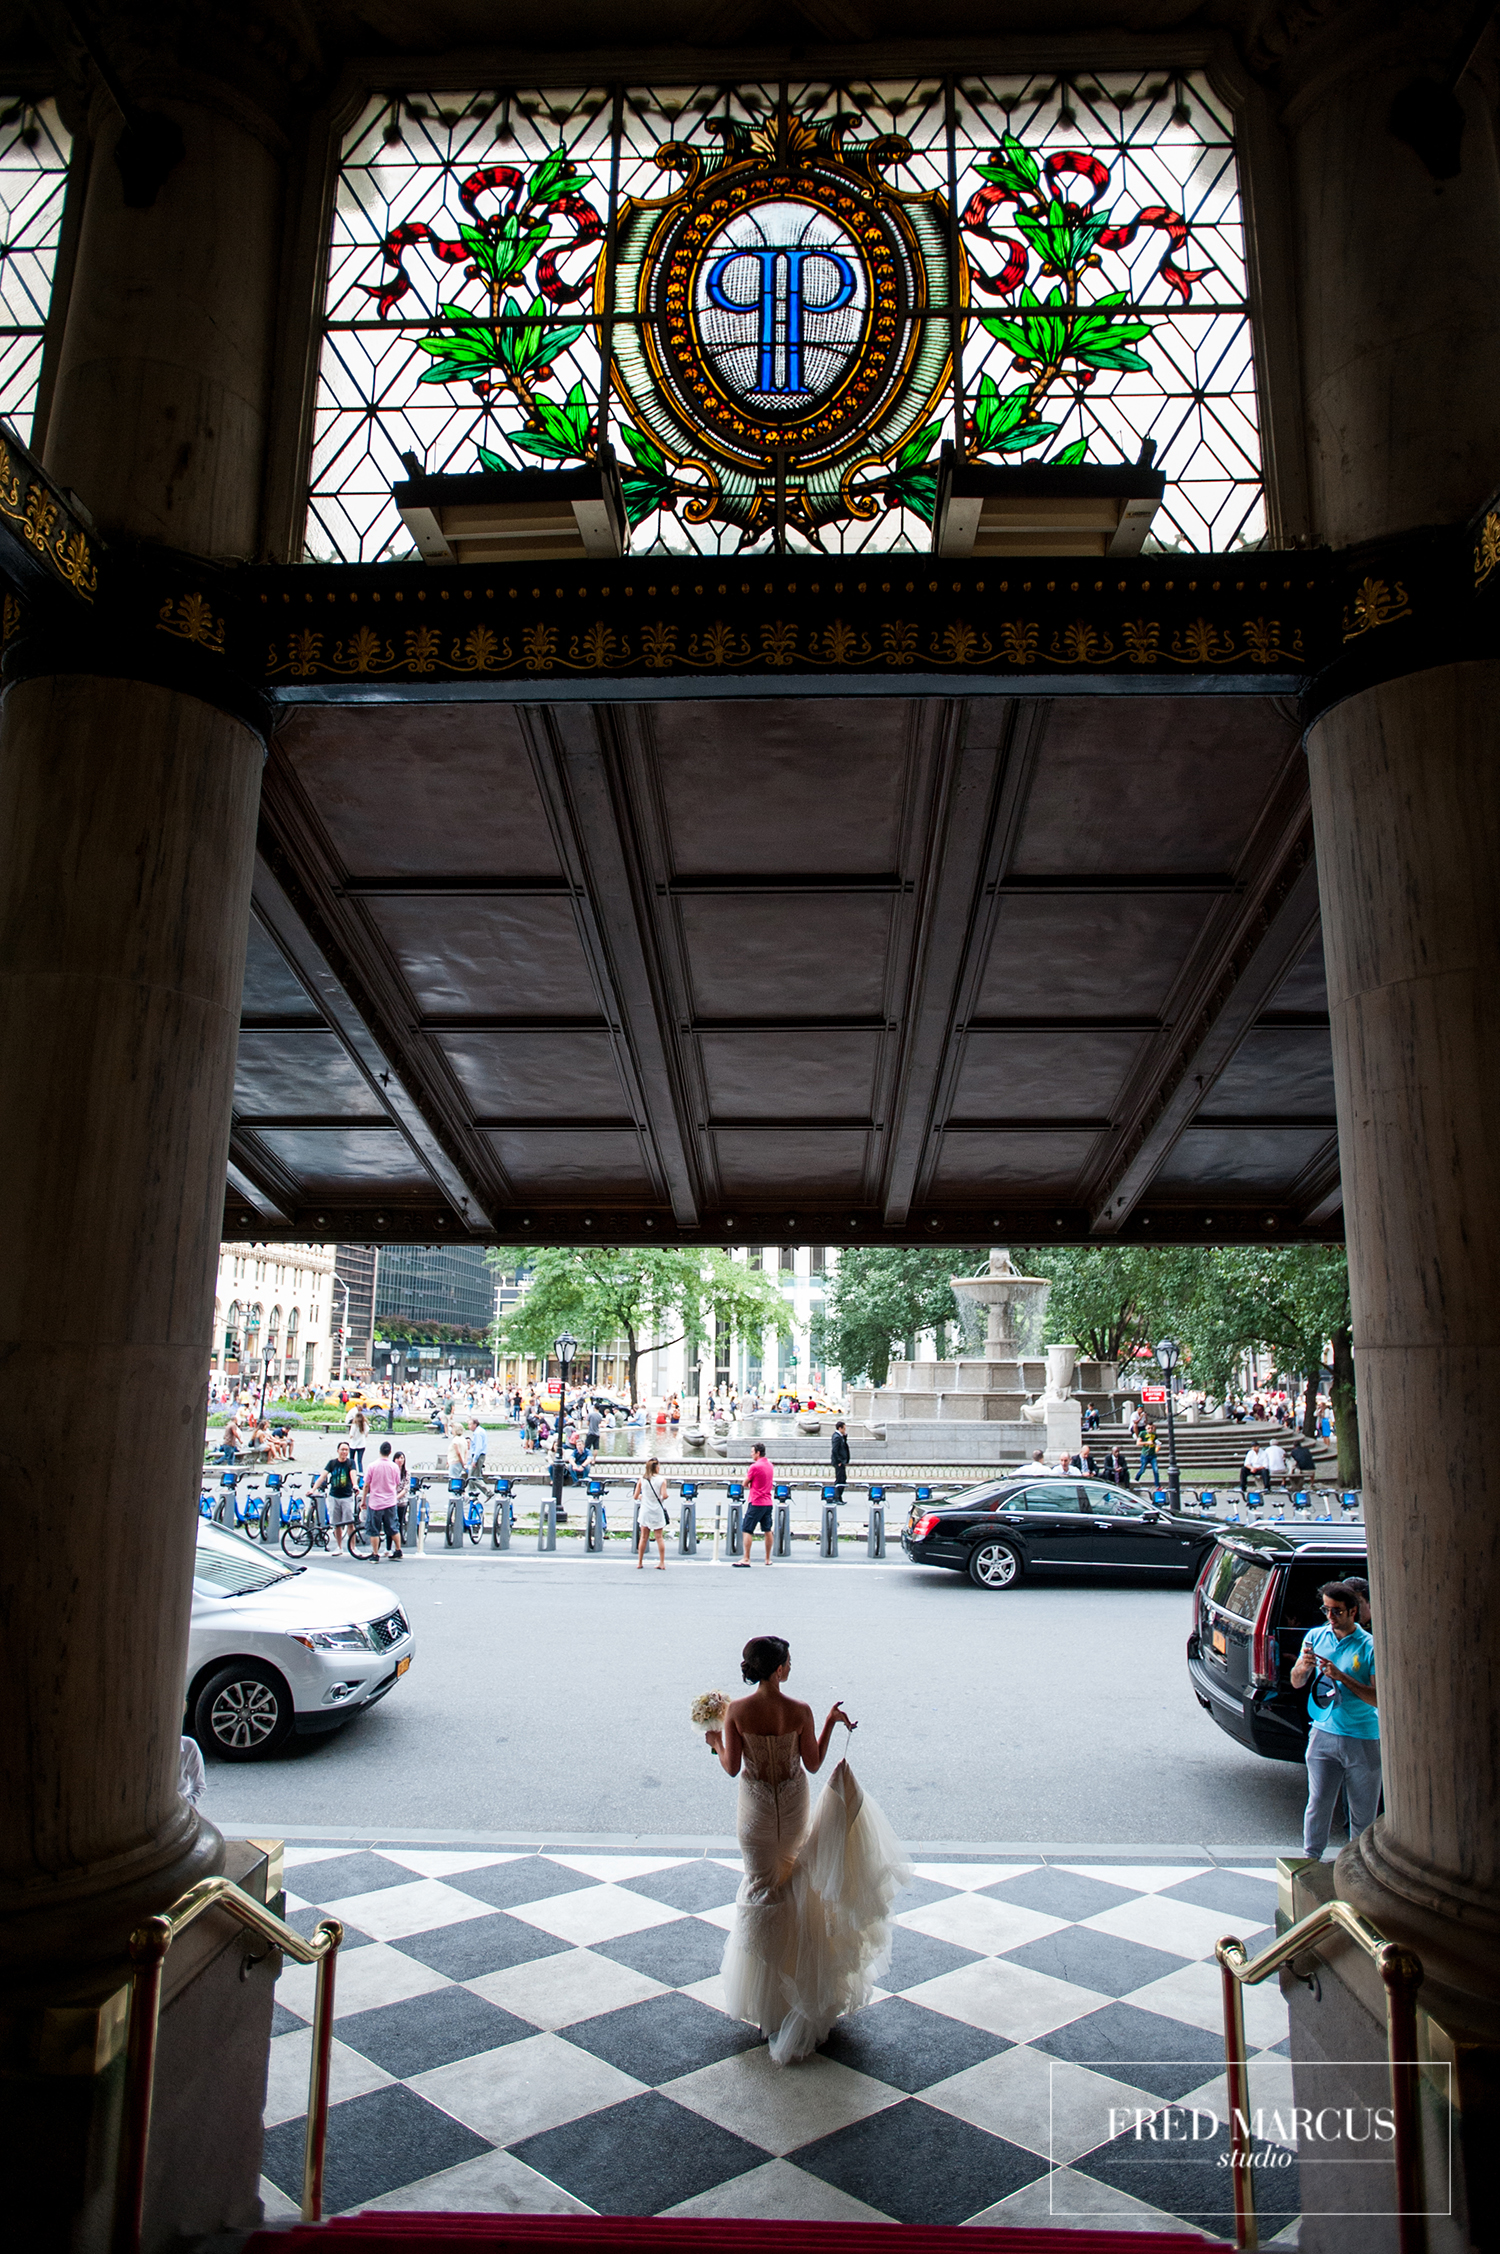 Photo of the Plaza: The Plaza Hotel